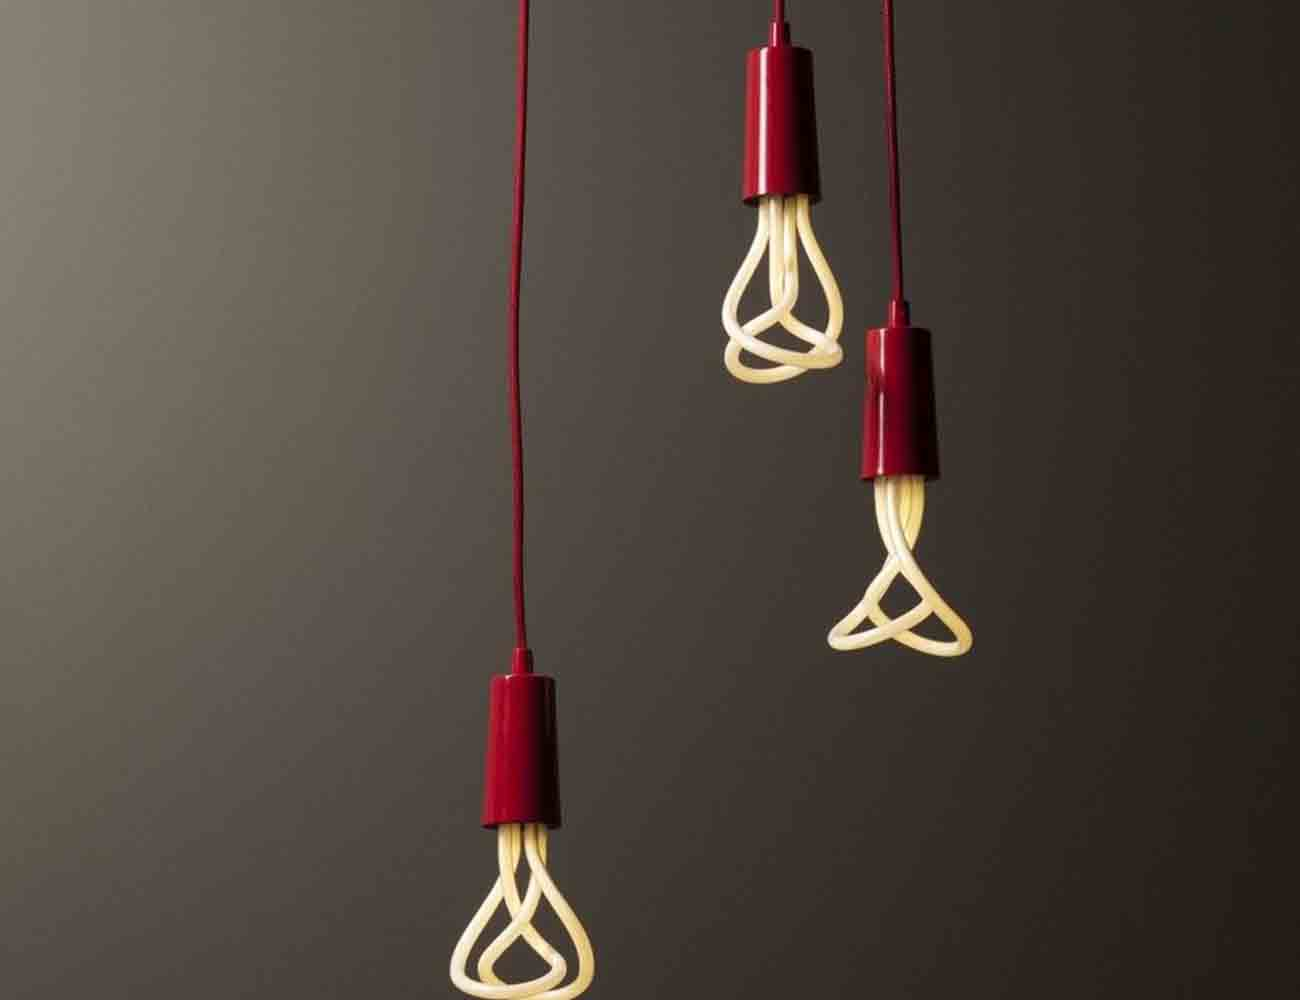 Plumen Pendant Drop Cap Set – Low Energy Light Bulb